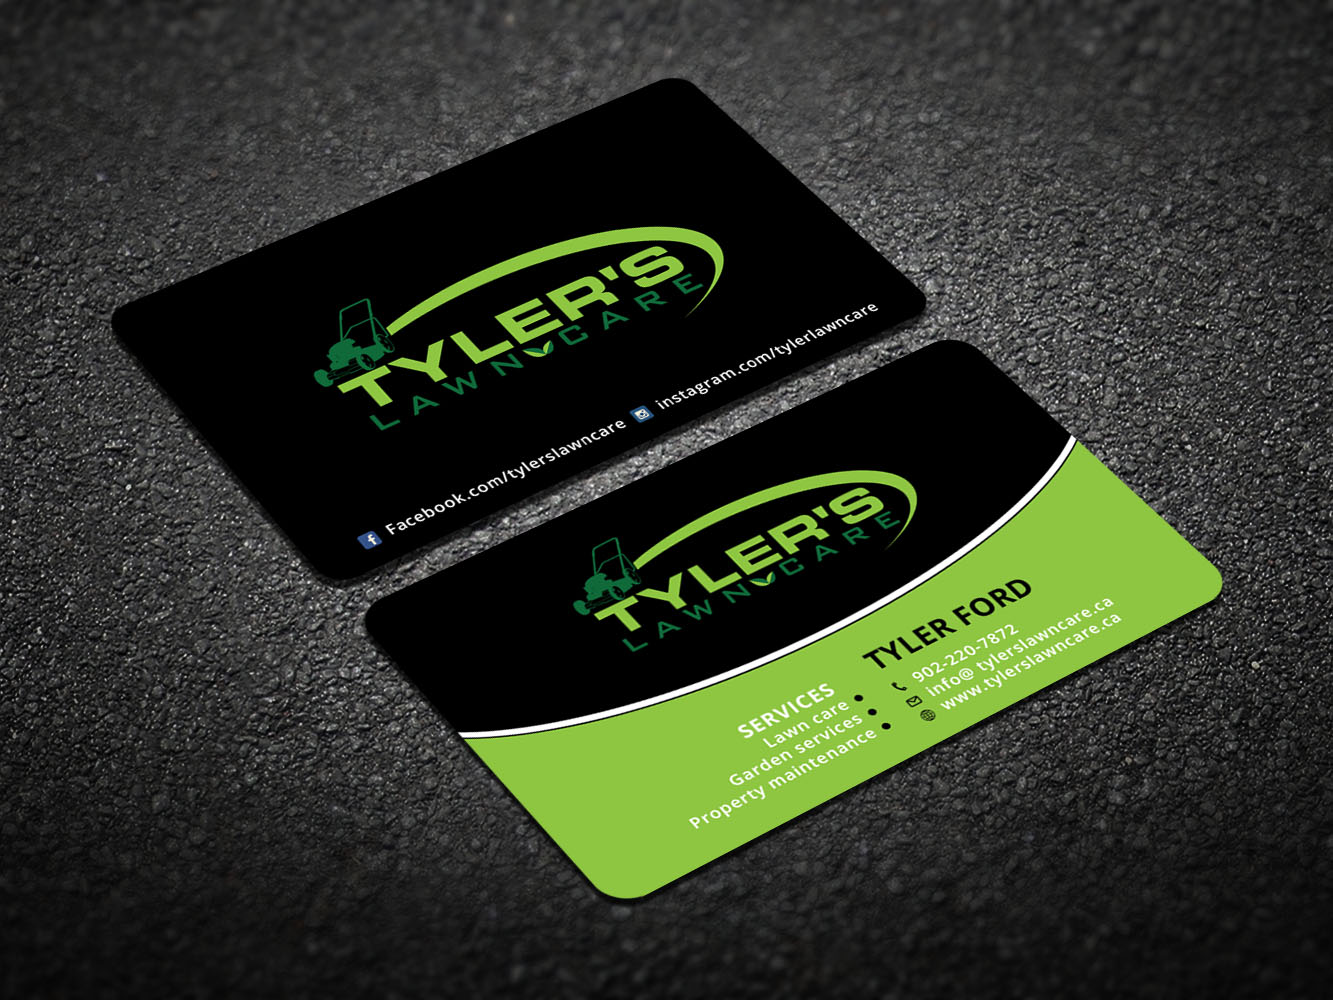 Modern bold lawn care business card design for tylers lawn care business card design by design xeneration for tylers lawn care design 10617066 colourmoves